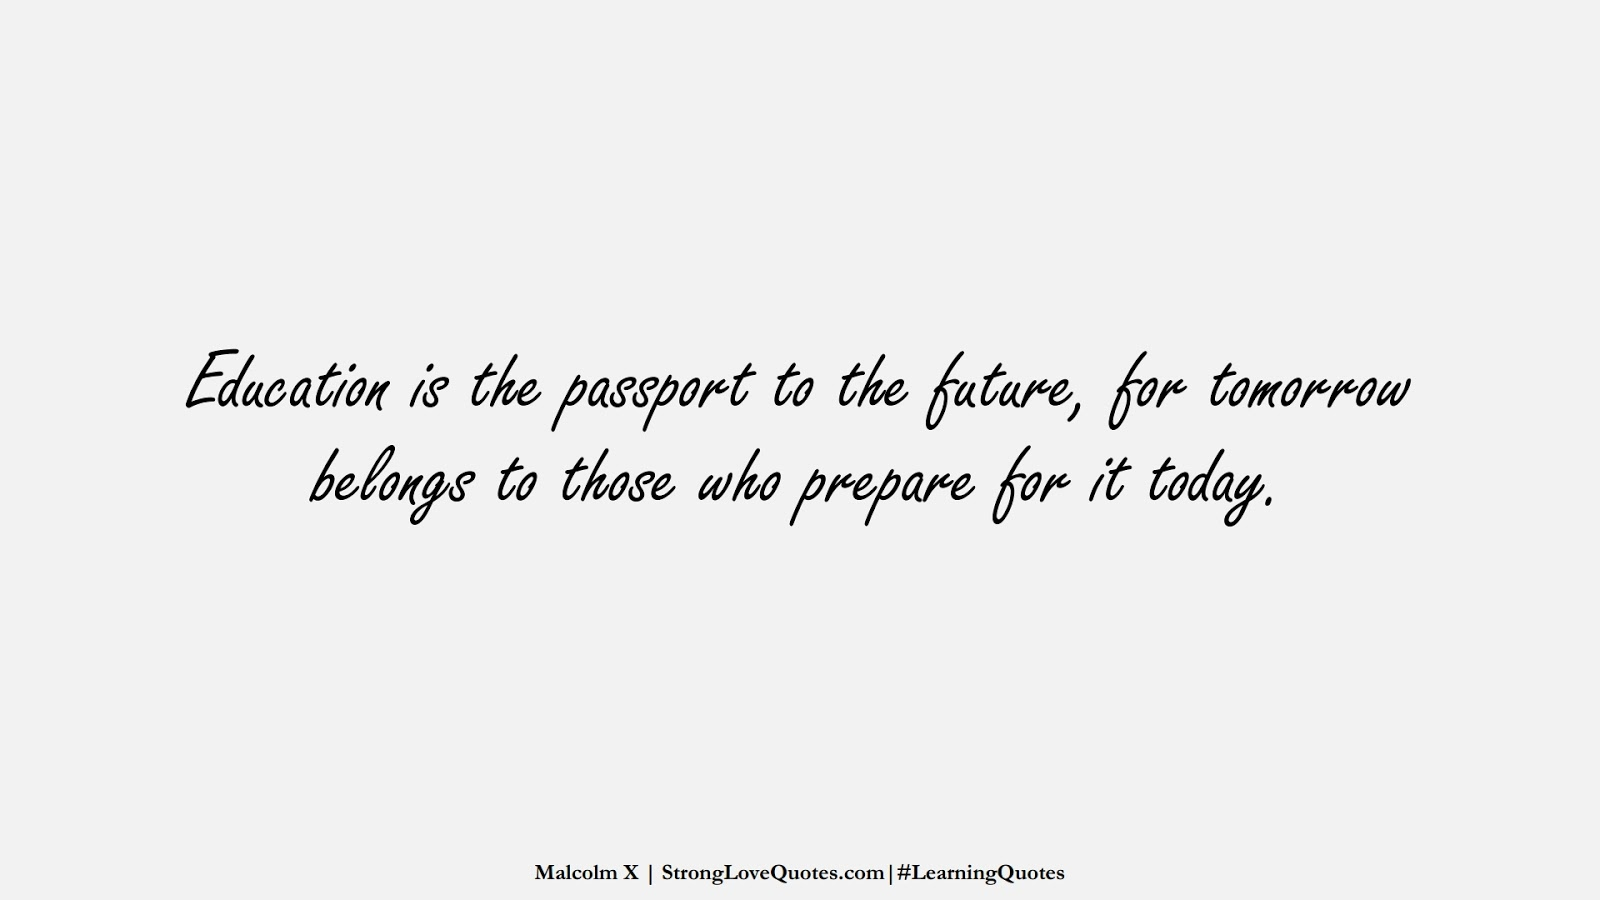 Education is the passport to the future, for tomorrow belongs to those who prepare for it today. (Malcolm X);  #LearningQuotes